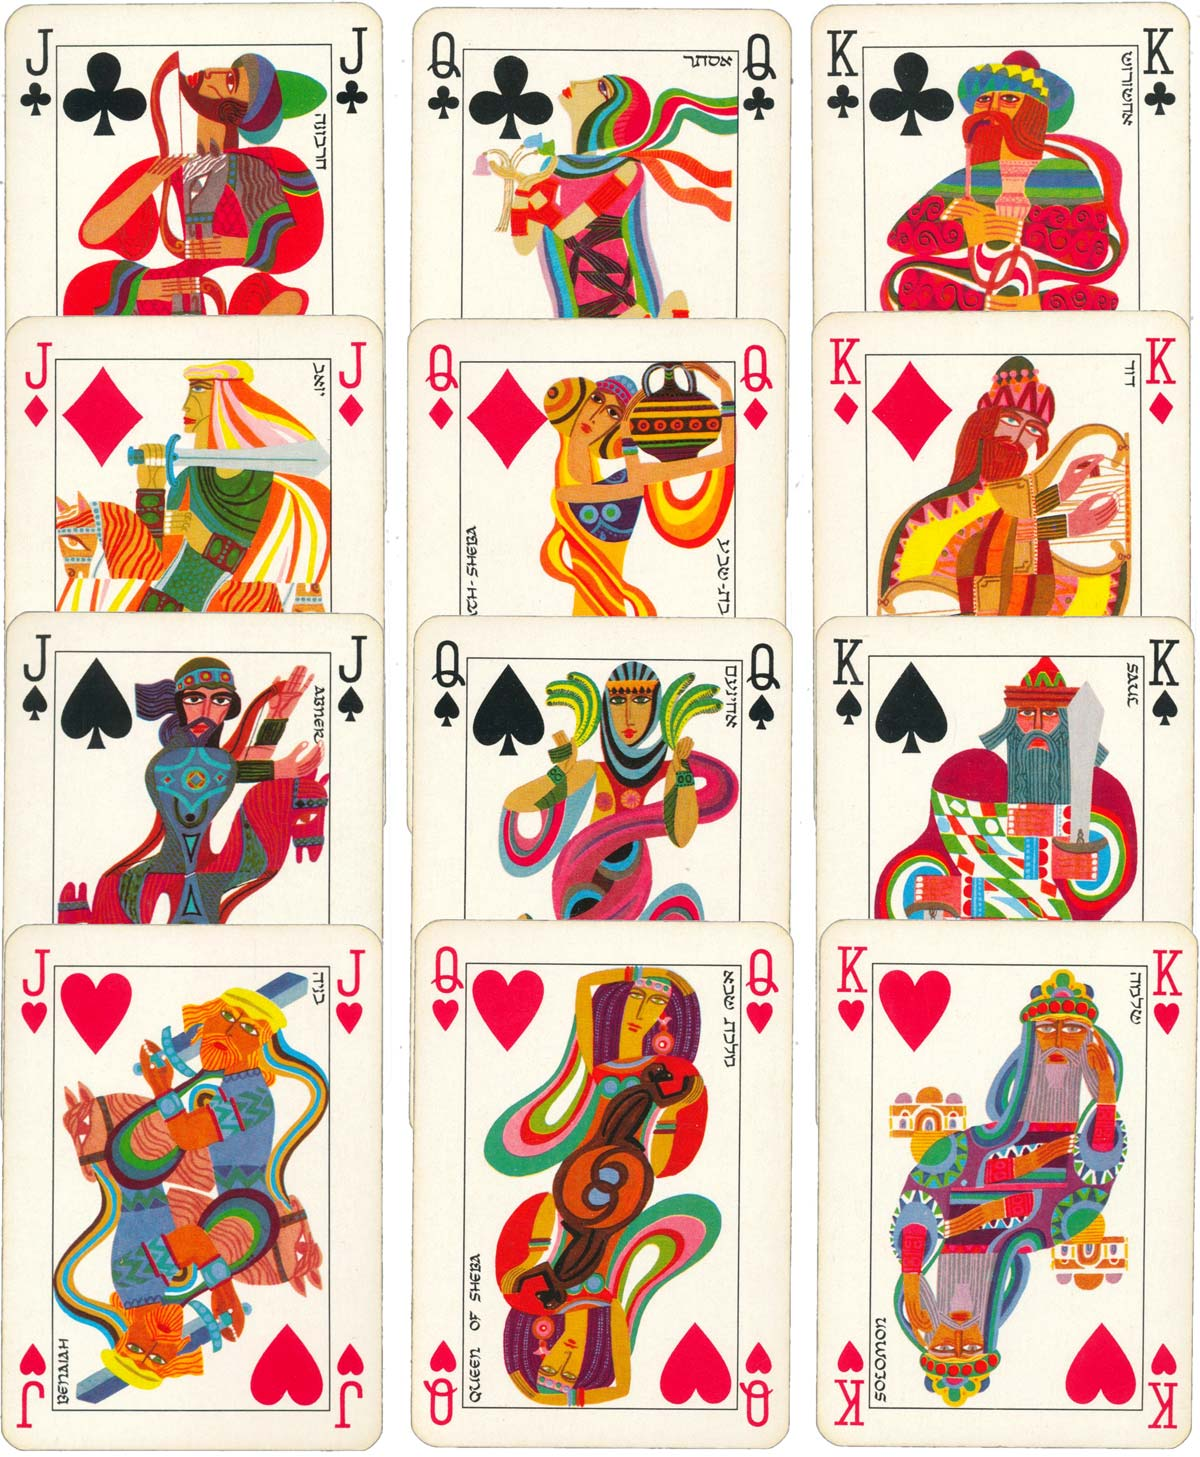 New Jacob's Bible Cards published by Lion Playing Cards, Tel Aviv